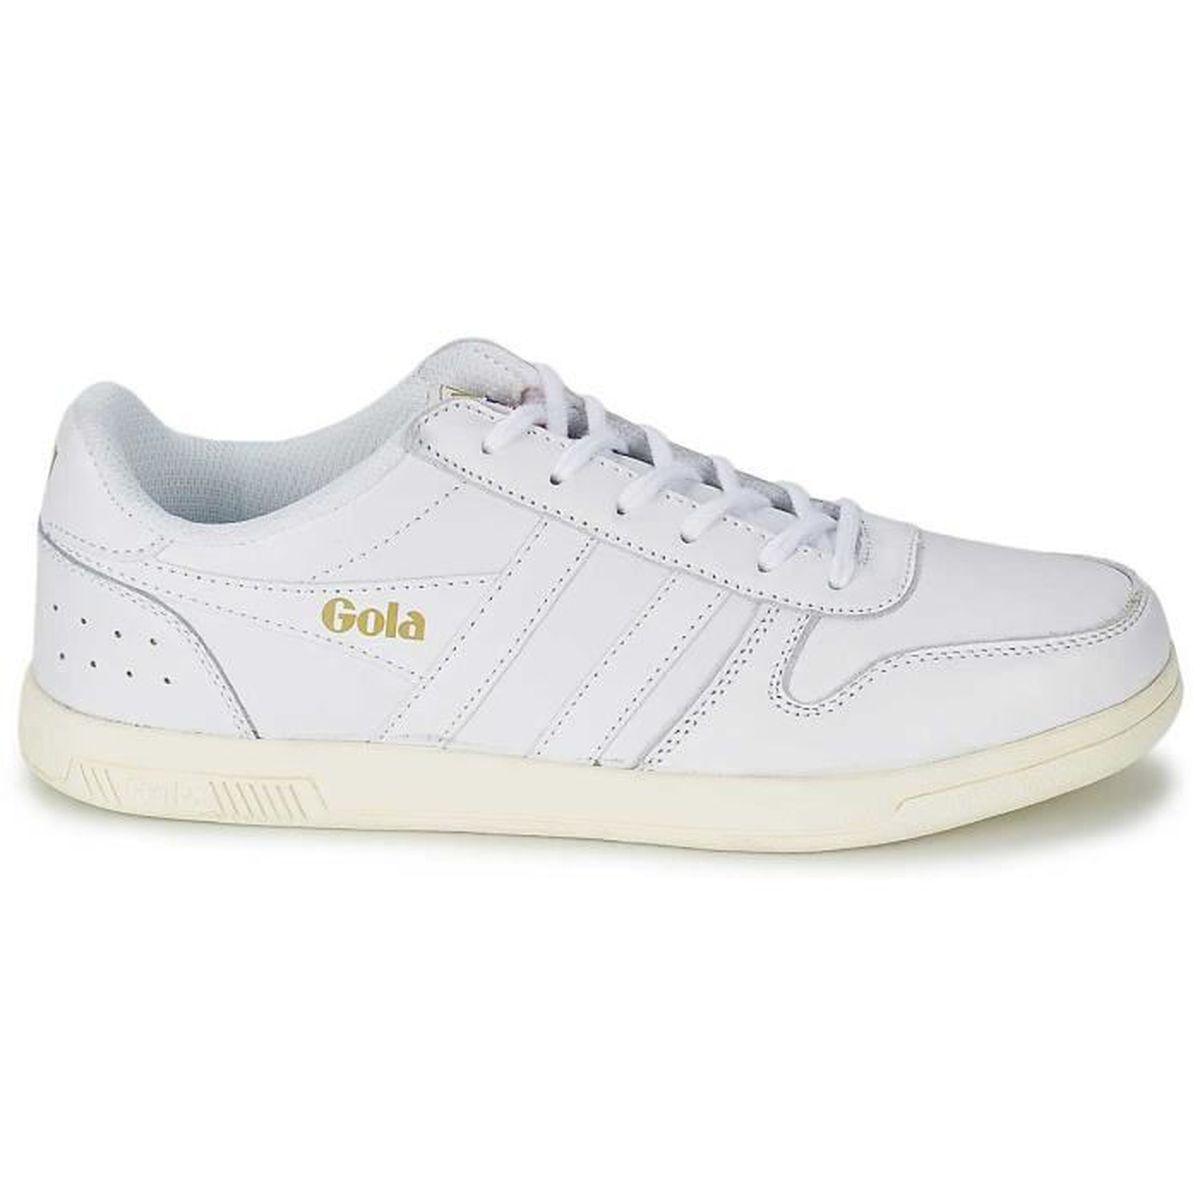 Chaussures Gola Equipe blanches Casual homme pQG8eJdU0